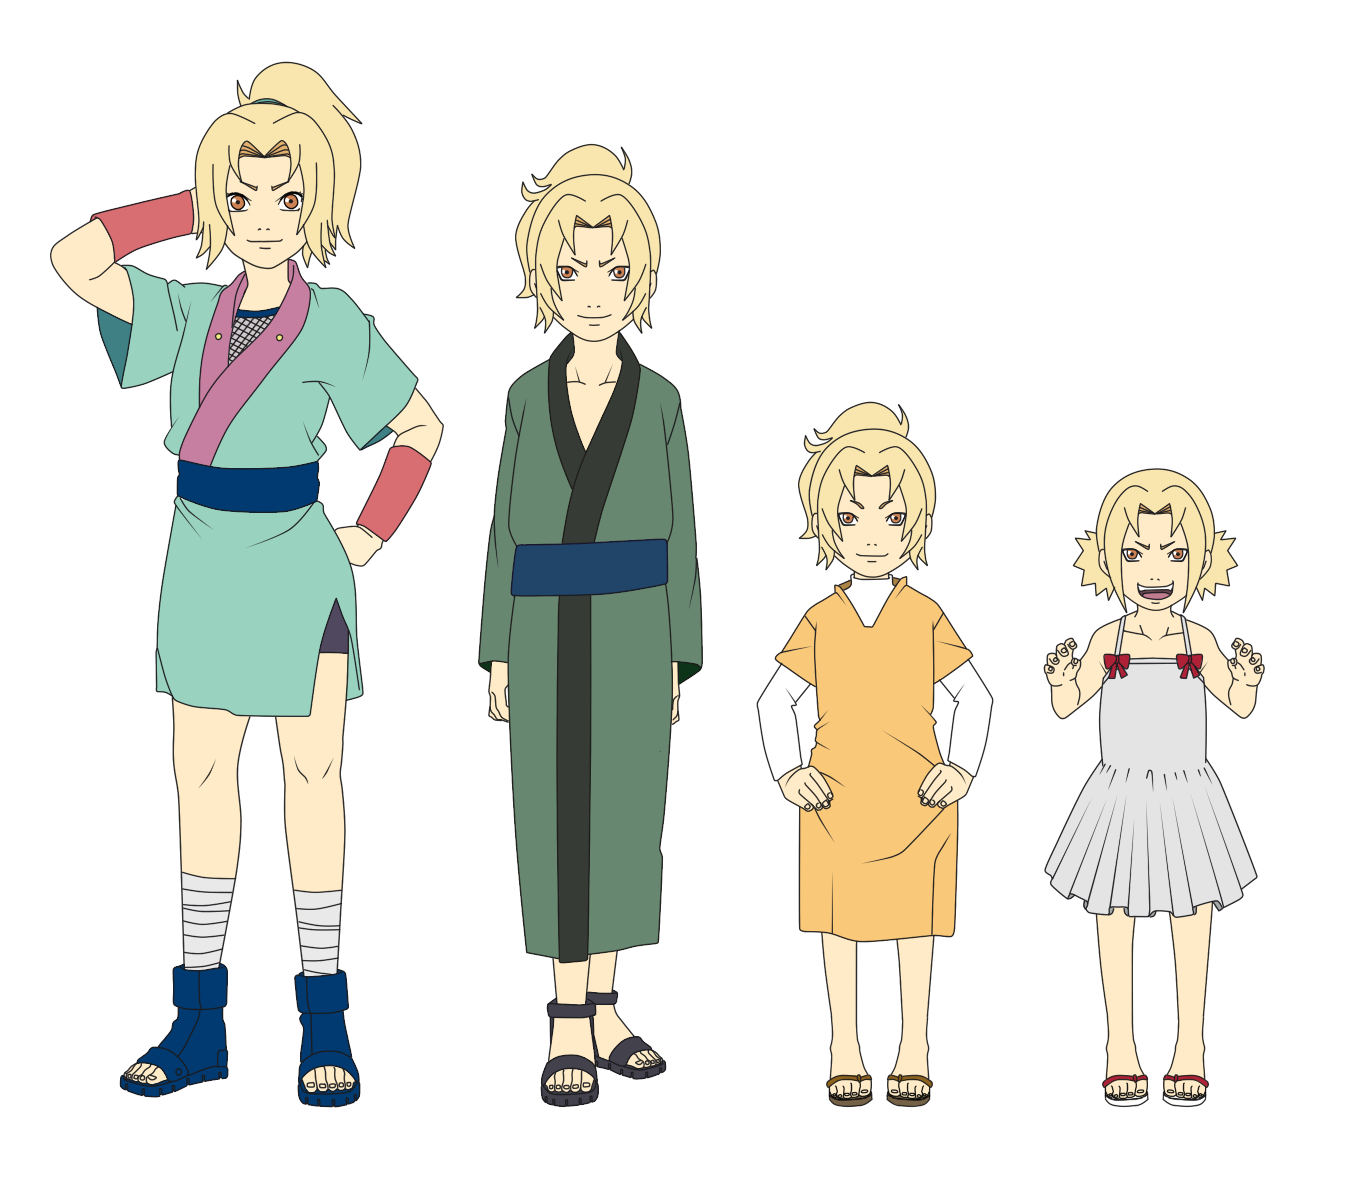 tsunade outfit color child by sunakisabakuno tsunade outfit color child by sunakisabakuno - Pictures To Color For Children